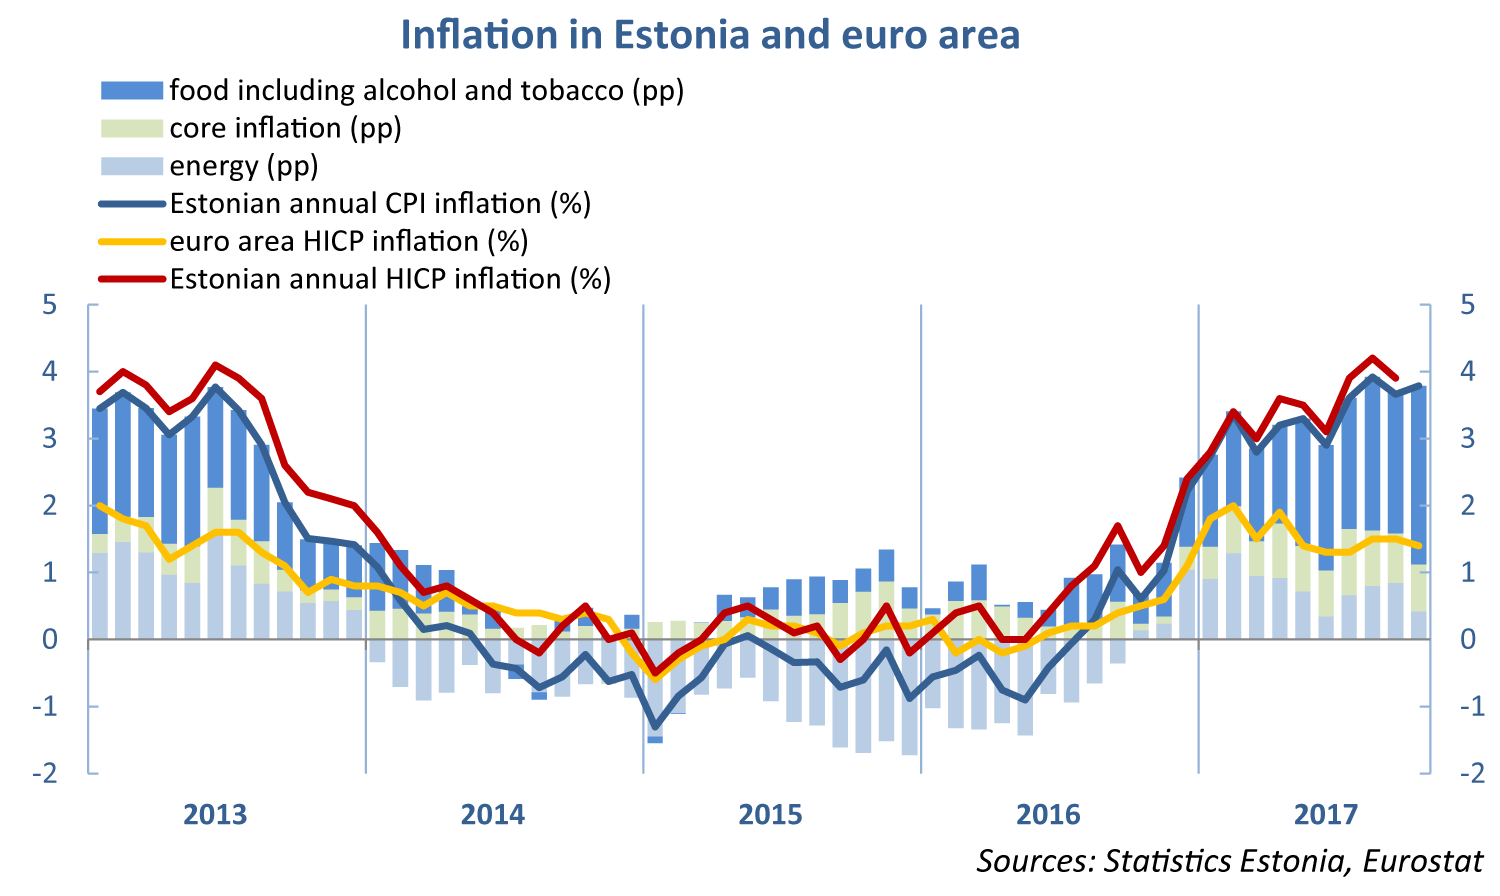 Inflation in Estonia and euro area